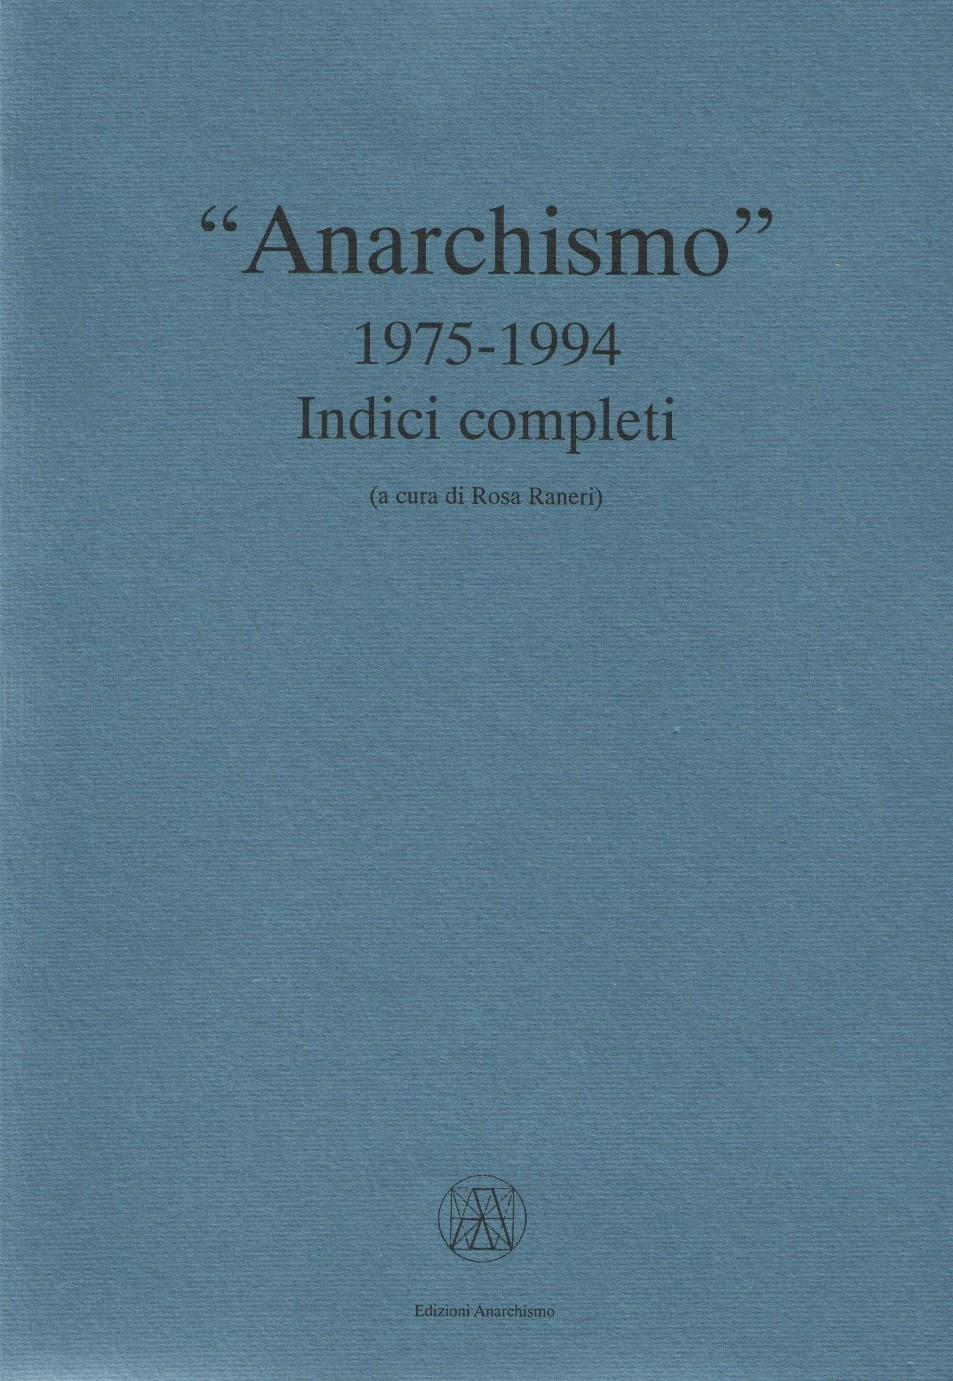 a-1-anarchismo-1975-1994-indici-completi-x-cover.jpg